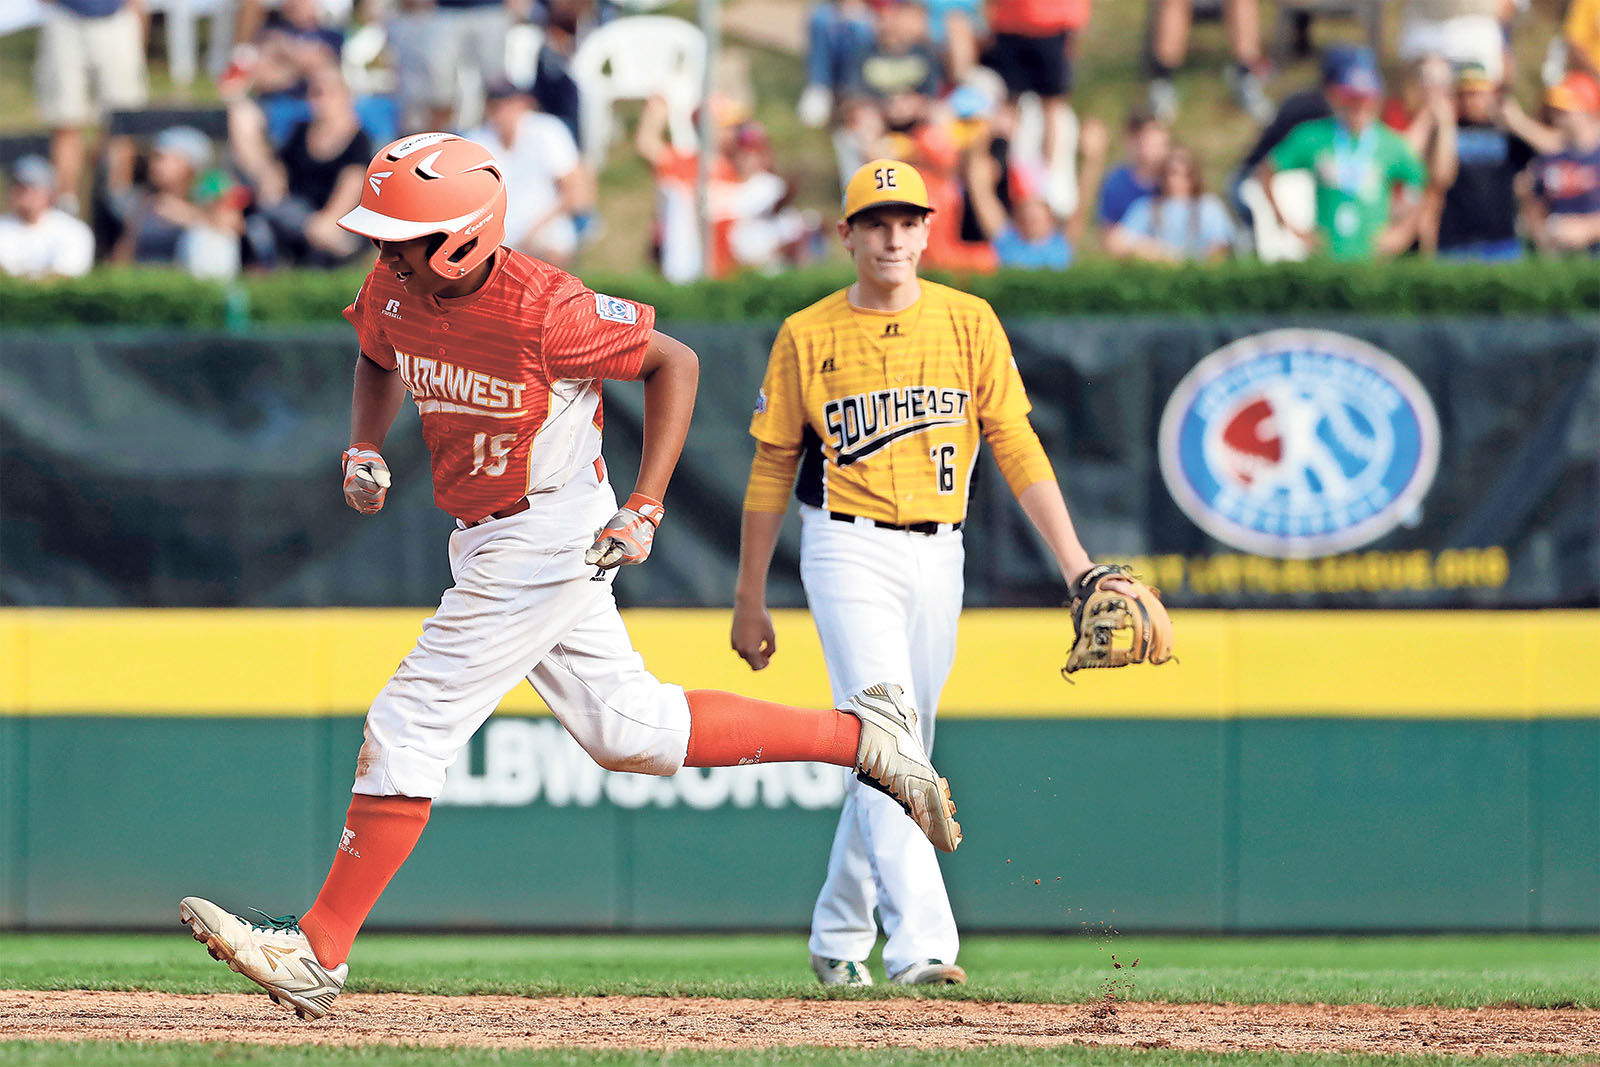 Mexico, Japan meet with spot in LLWS championship on the line